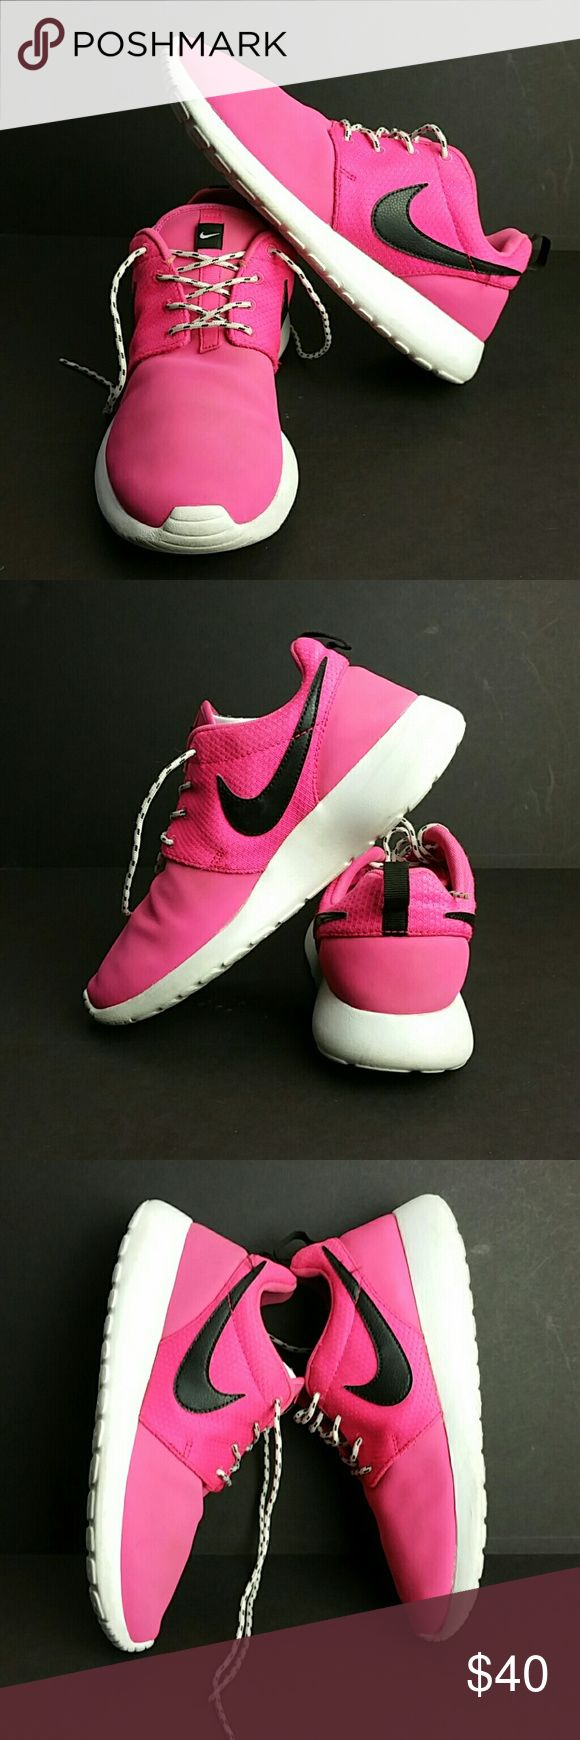 NIKE ROSHE RUN PINK FORCE YOUTH/WOMEN SHOES IN GOOD CONDITION   THIS IS A YOUTH SIZE 6Y WHICH IS WOMEN SIZE 7.5  SKE # KU5 NIKE Shoes Athletic Shoes